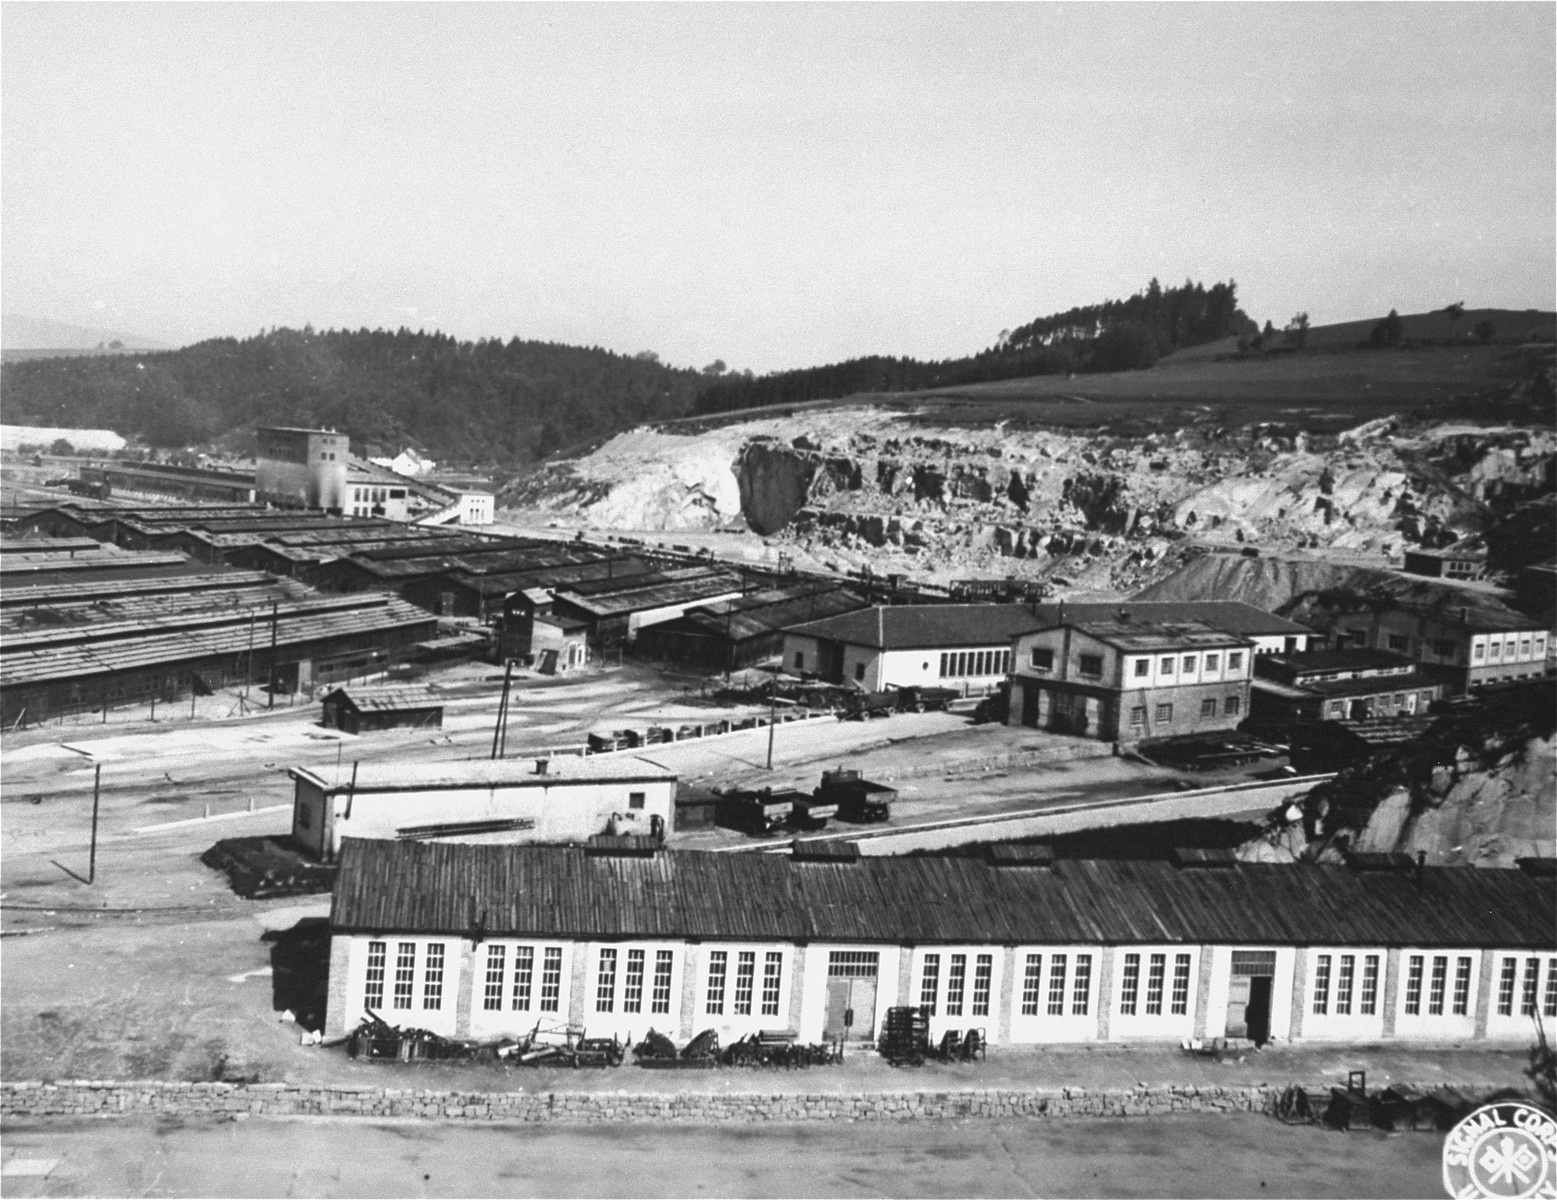 The Gusen concentration camp after liberation.